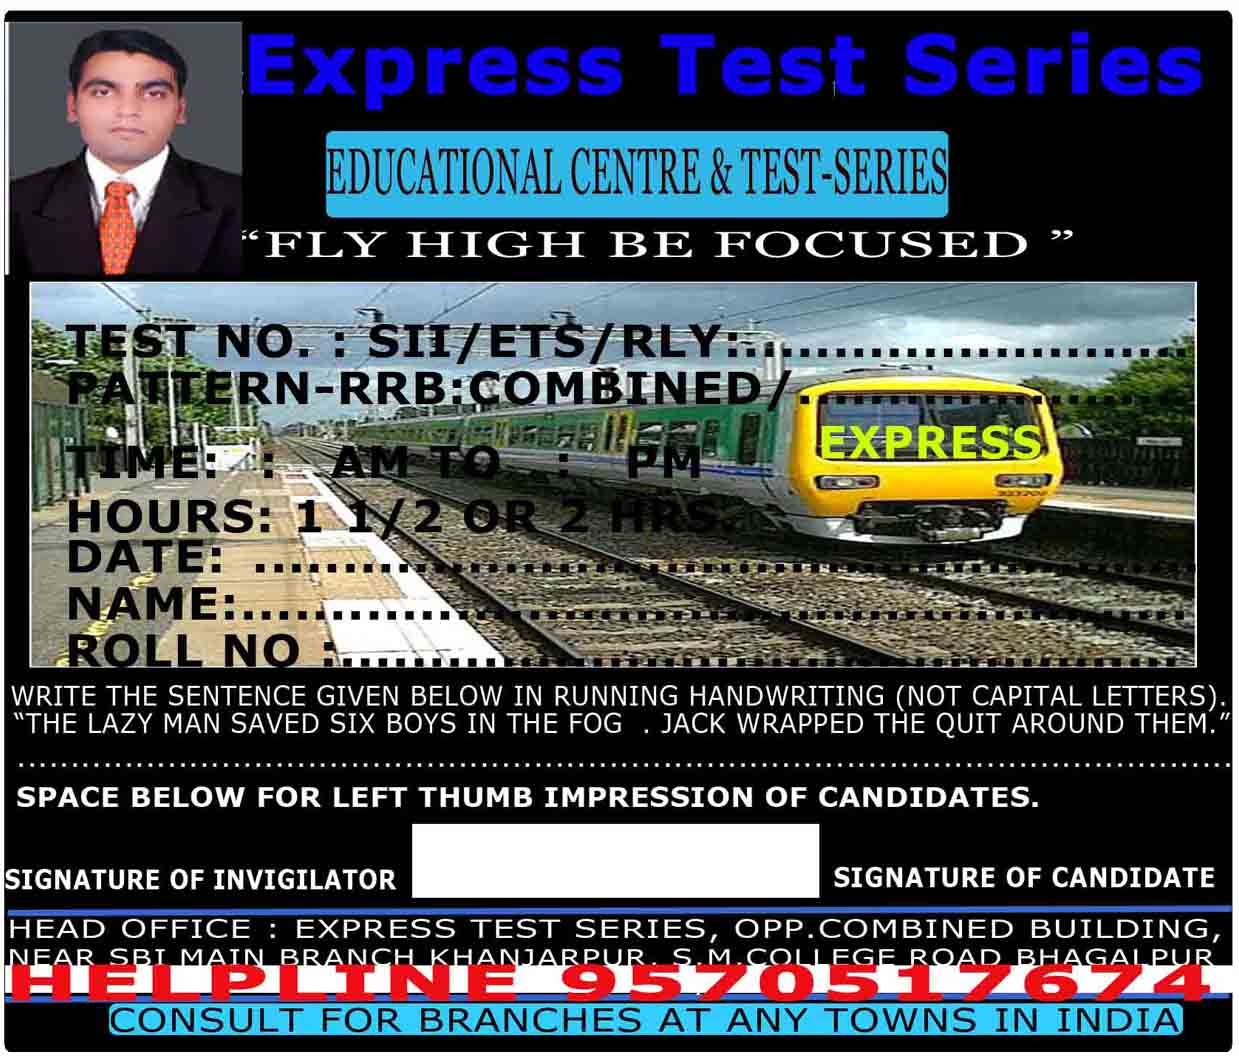 RAILWAY TEST SERIES (EXPRESS TEST)